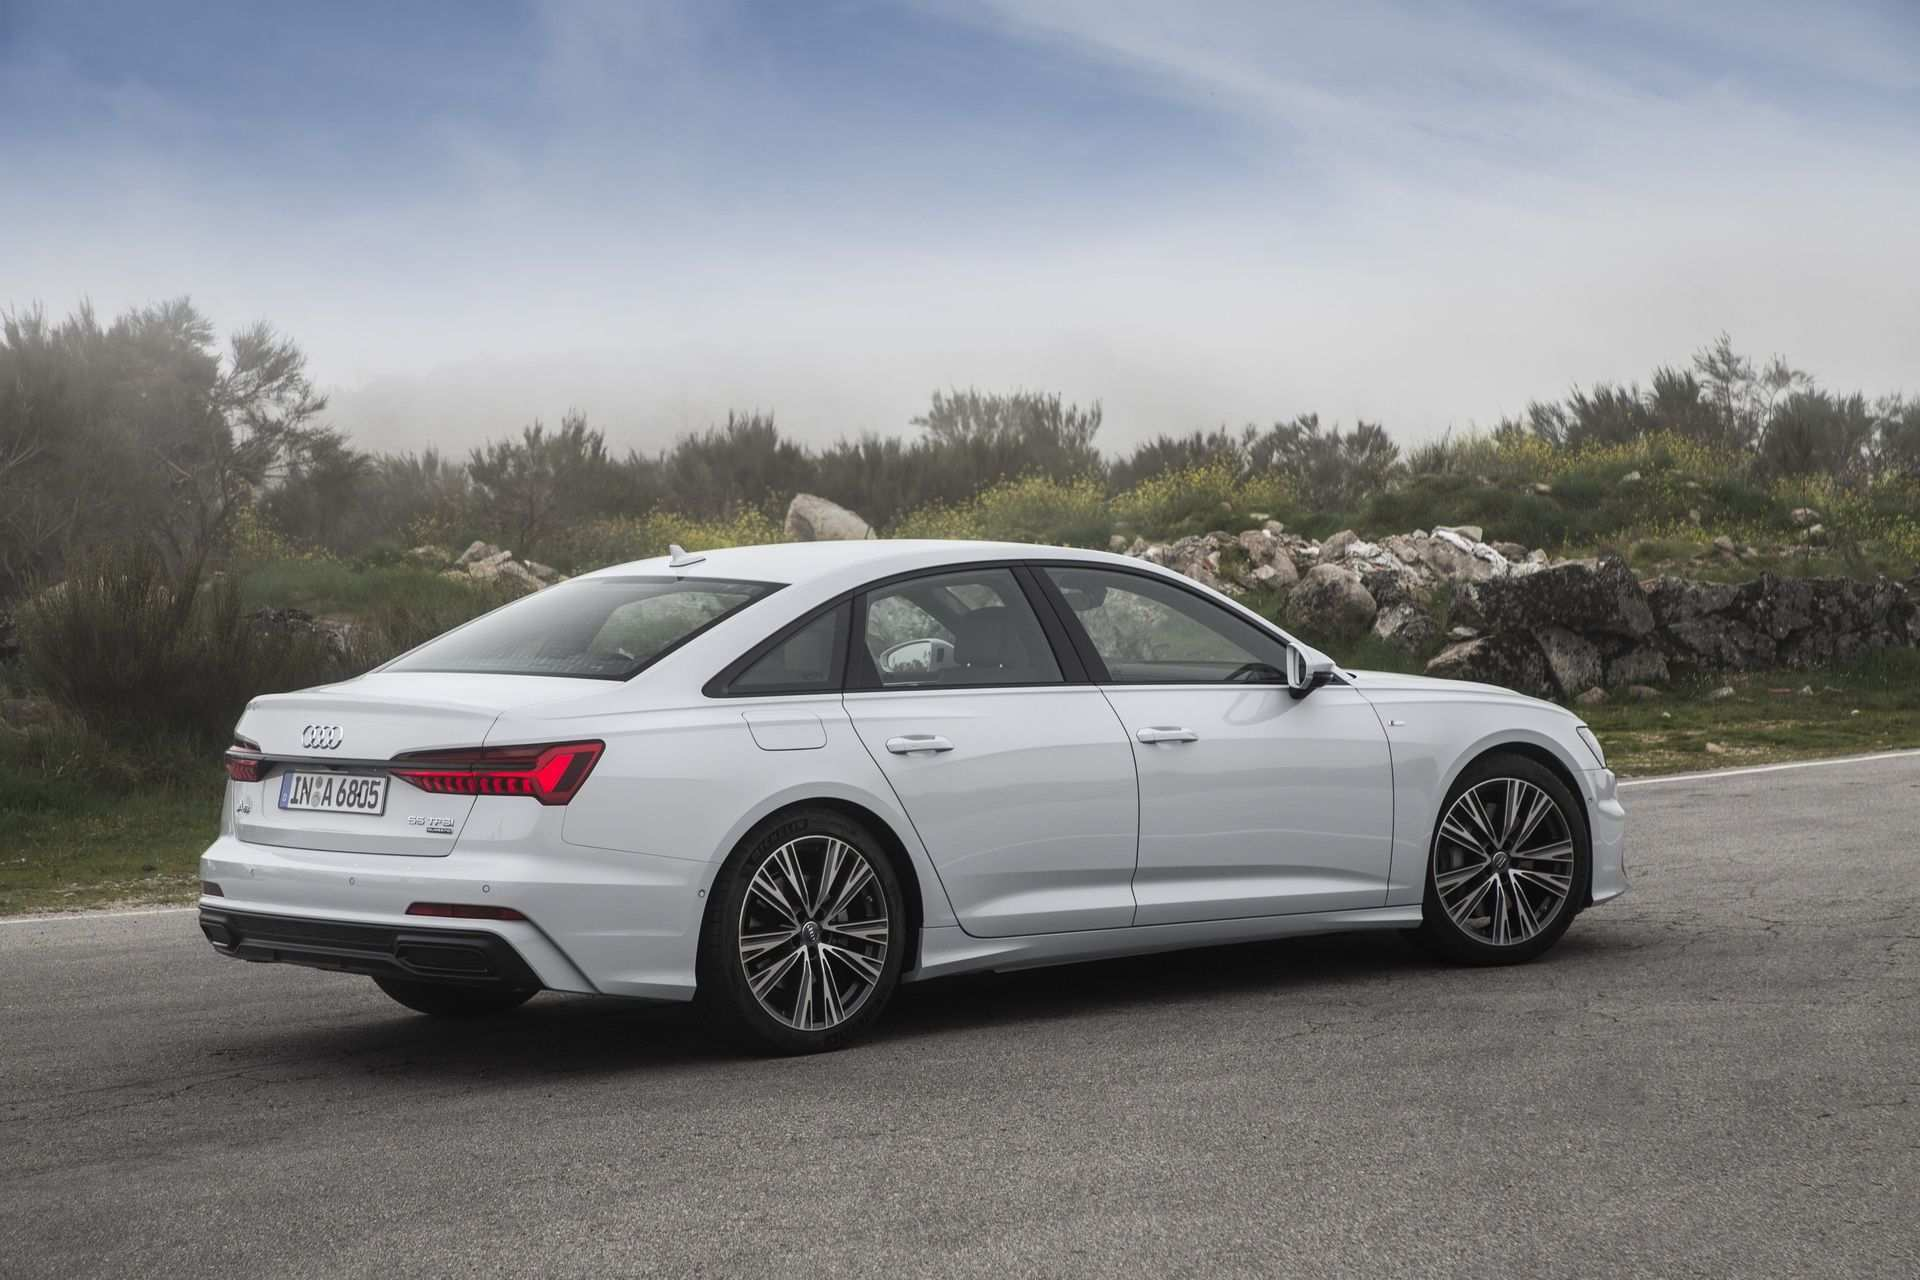 17 Great 2019 Audi Tdi Picture by 2019 Audi Tdi